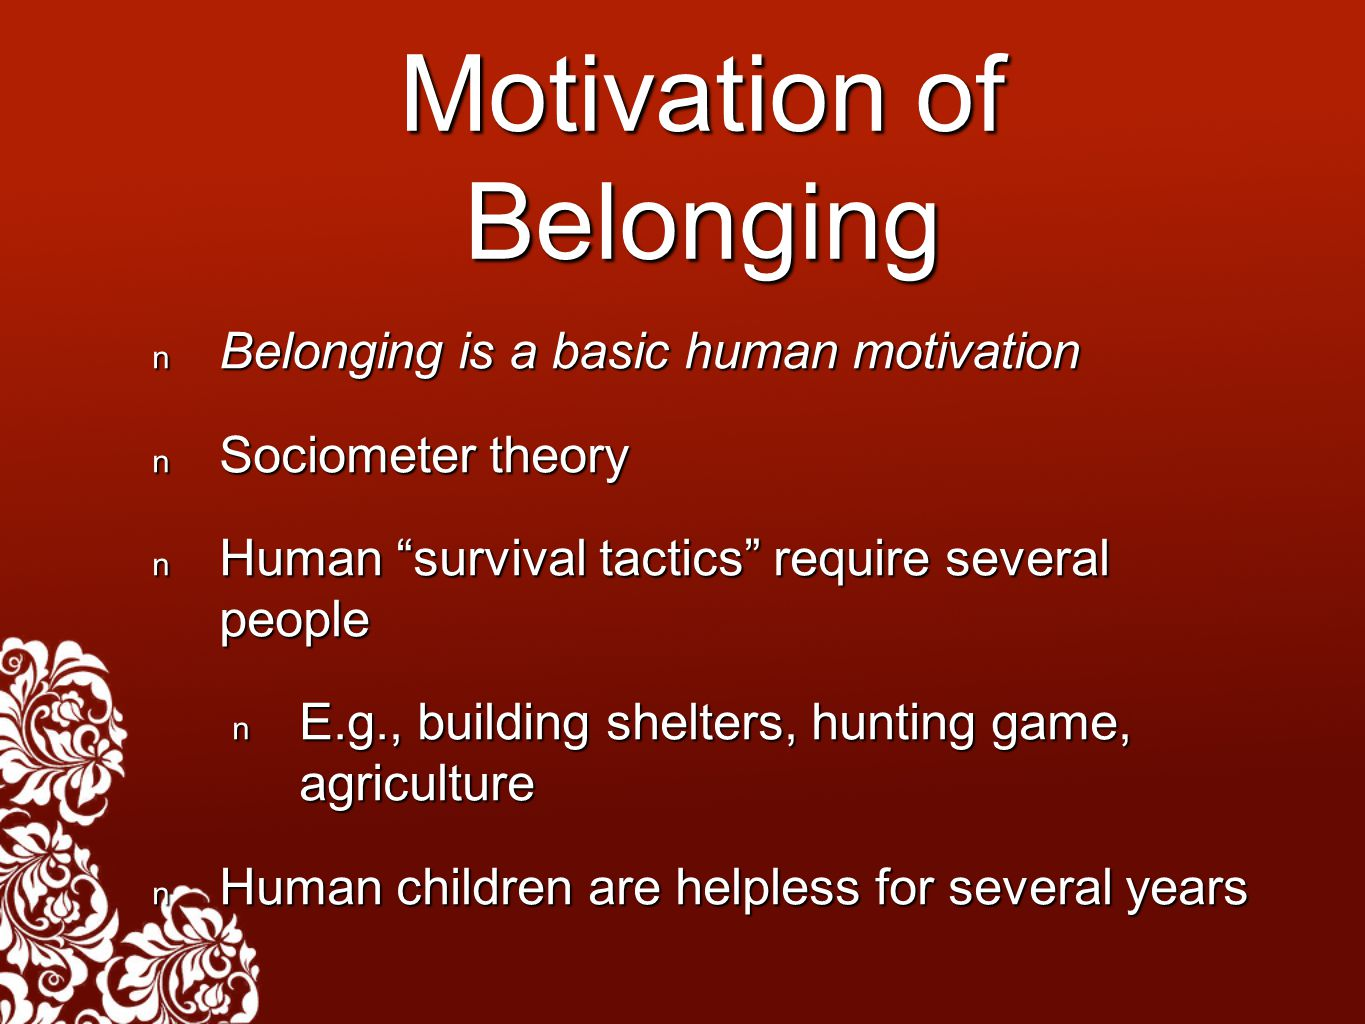 Motivation of Belonging Belonging is a basic human motivation Belonging is a basic human motivation Sociometer theory Sociometer theory Human survival tactics require several people Human survival tactics require several people E.g., building shelters, hunting game, agriculture E.g., building shelters, hunting game, agriculture Human children are helpless for several years Human children are helpless for several years